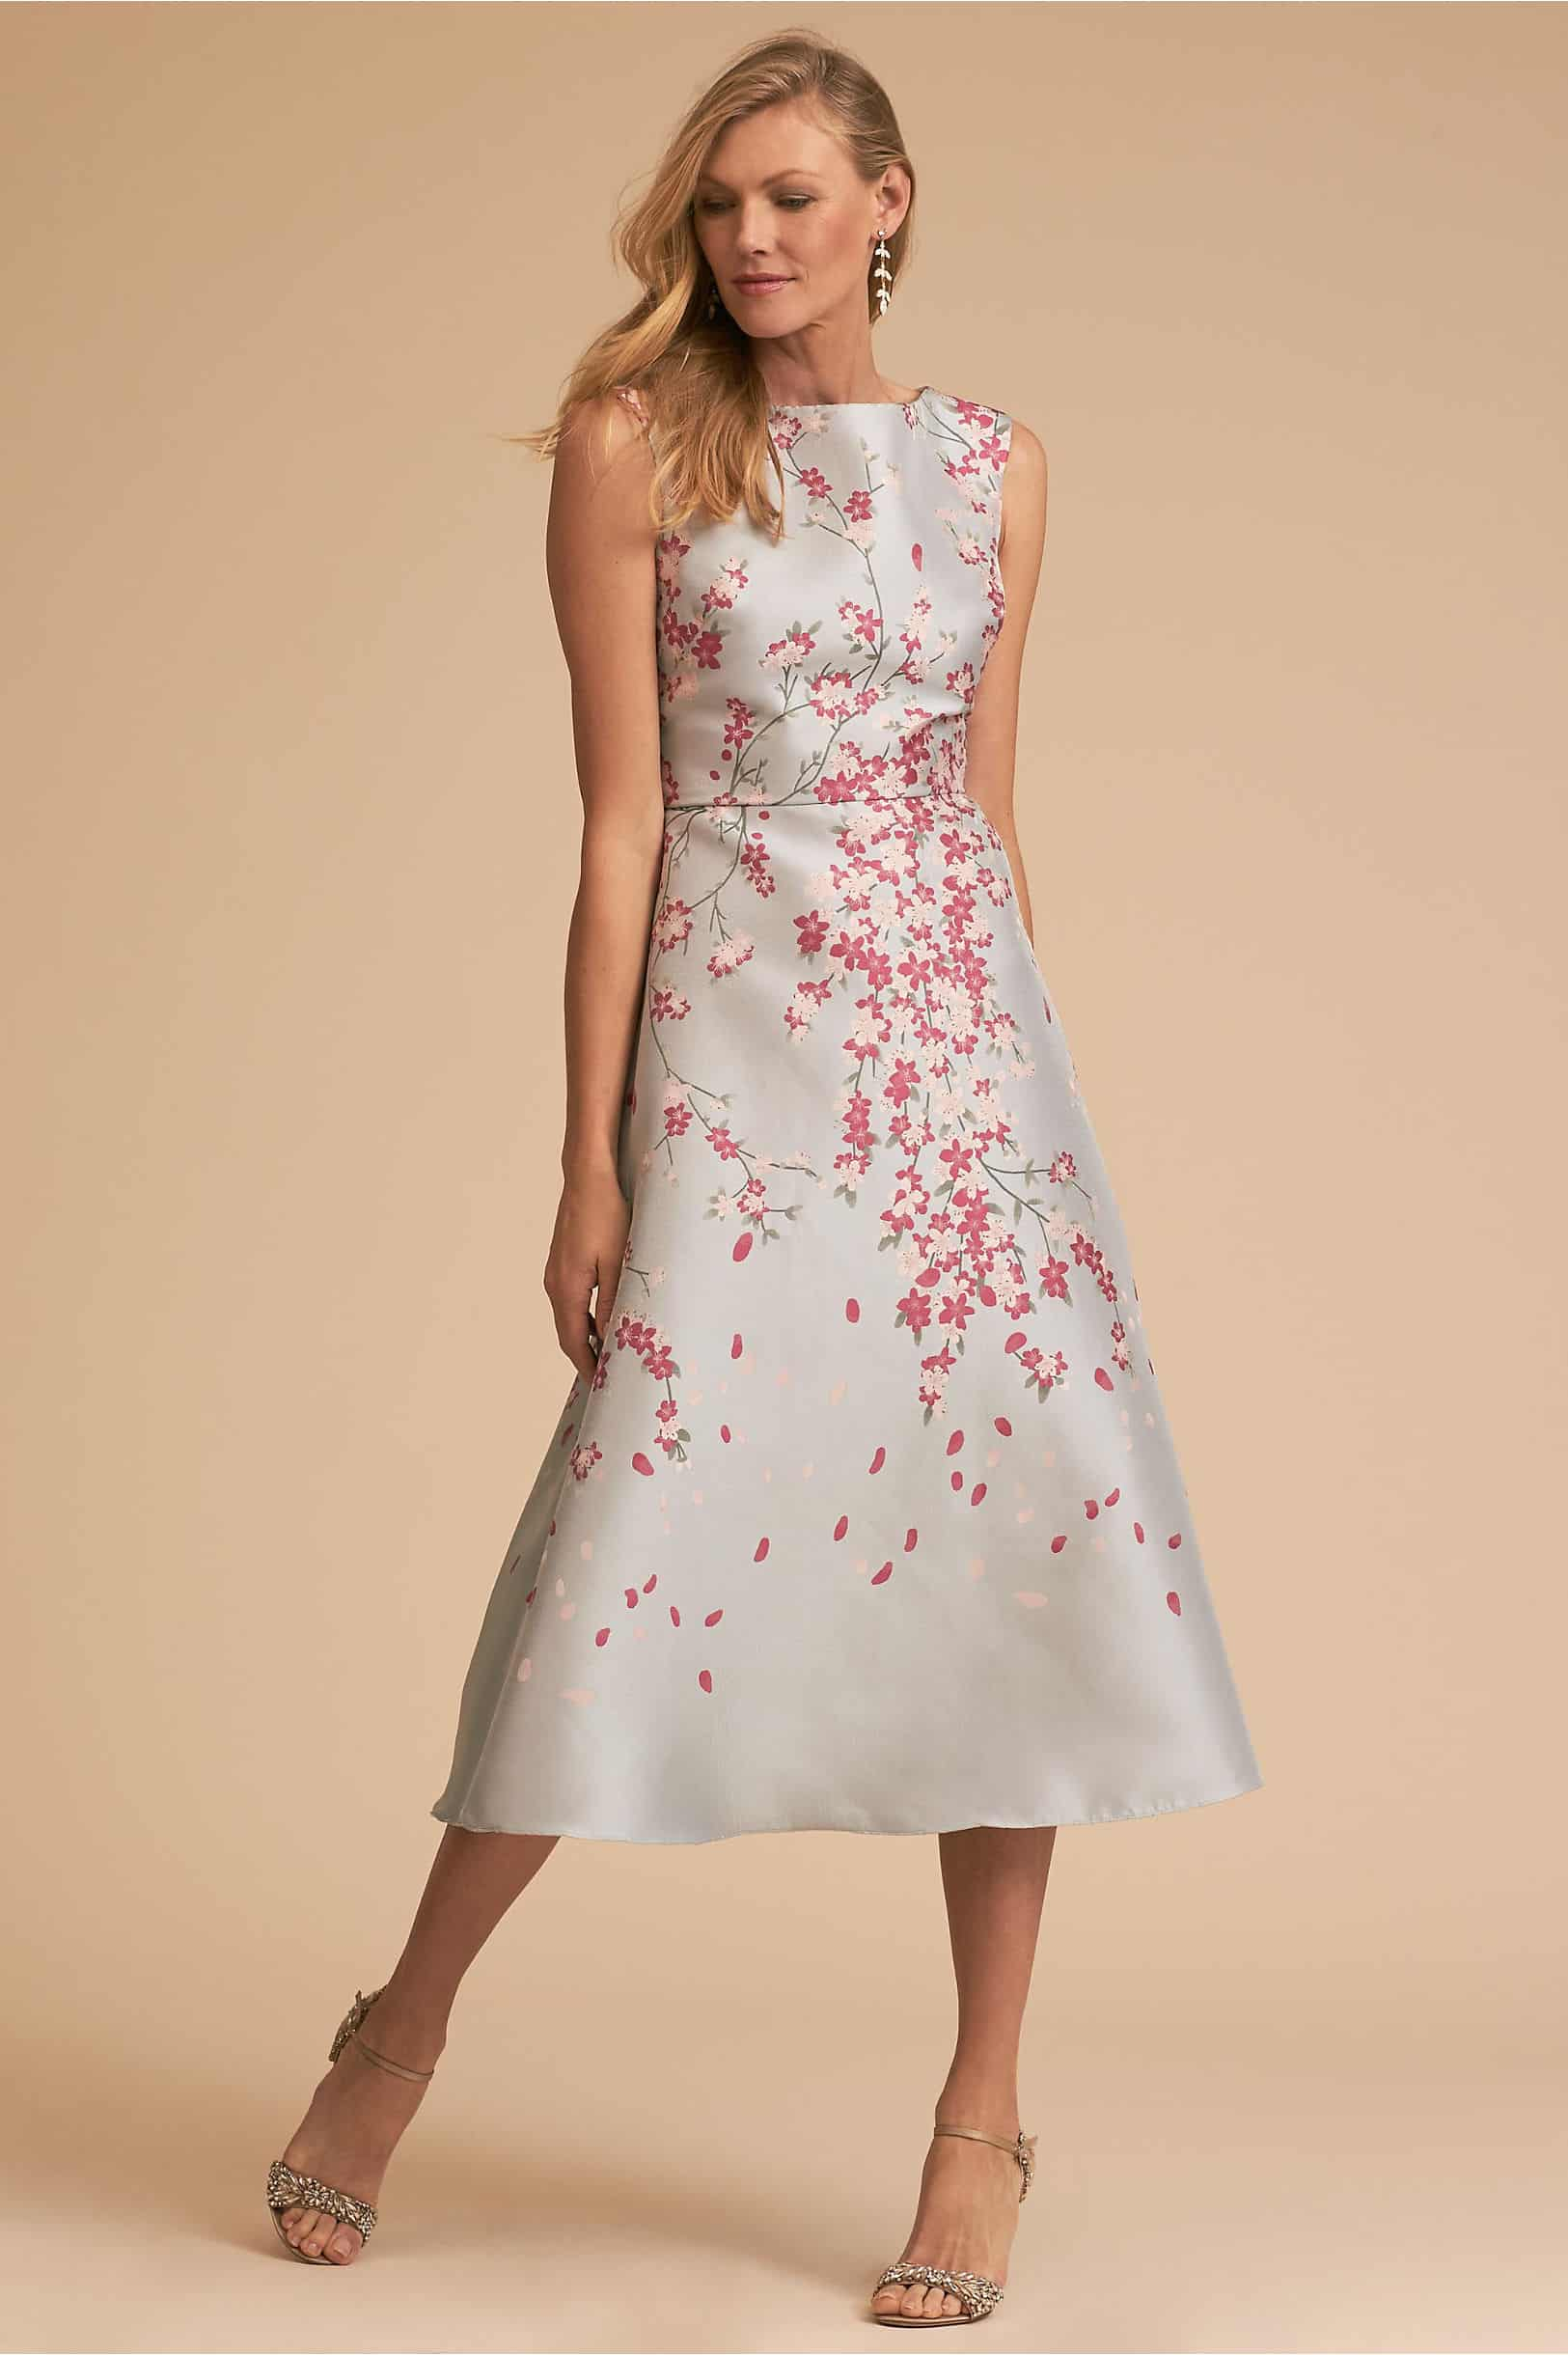 cherry blossom mother of the bride dressfrom BHLDN